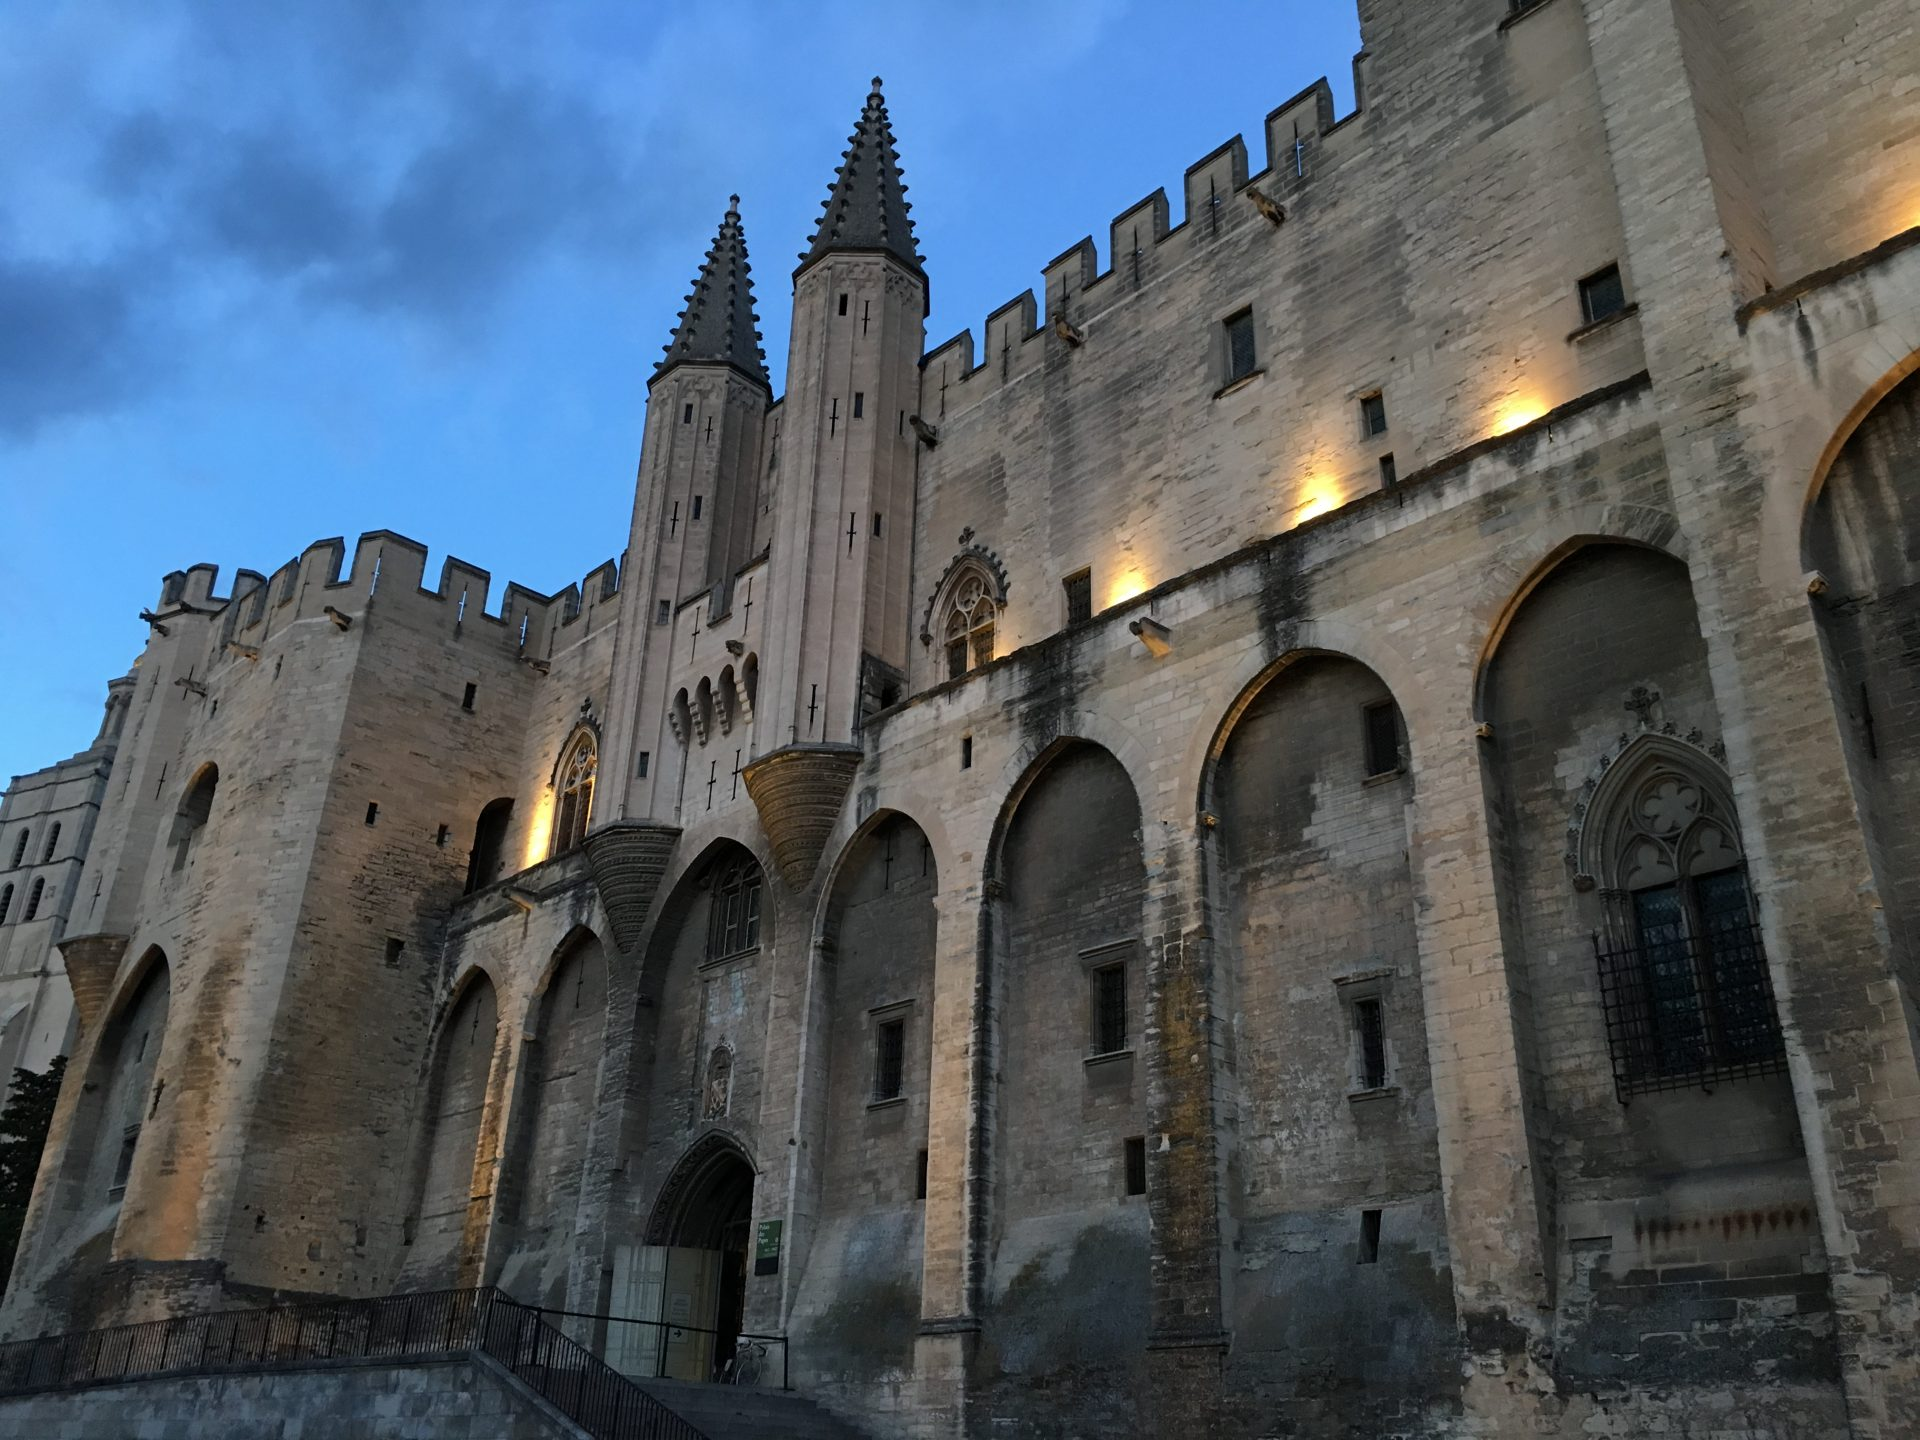 Palais des Papes at dusk